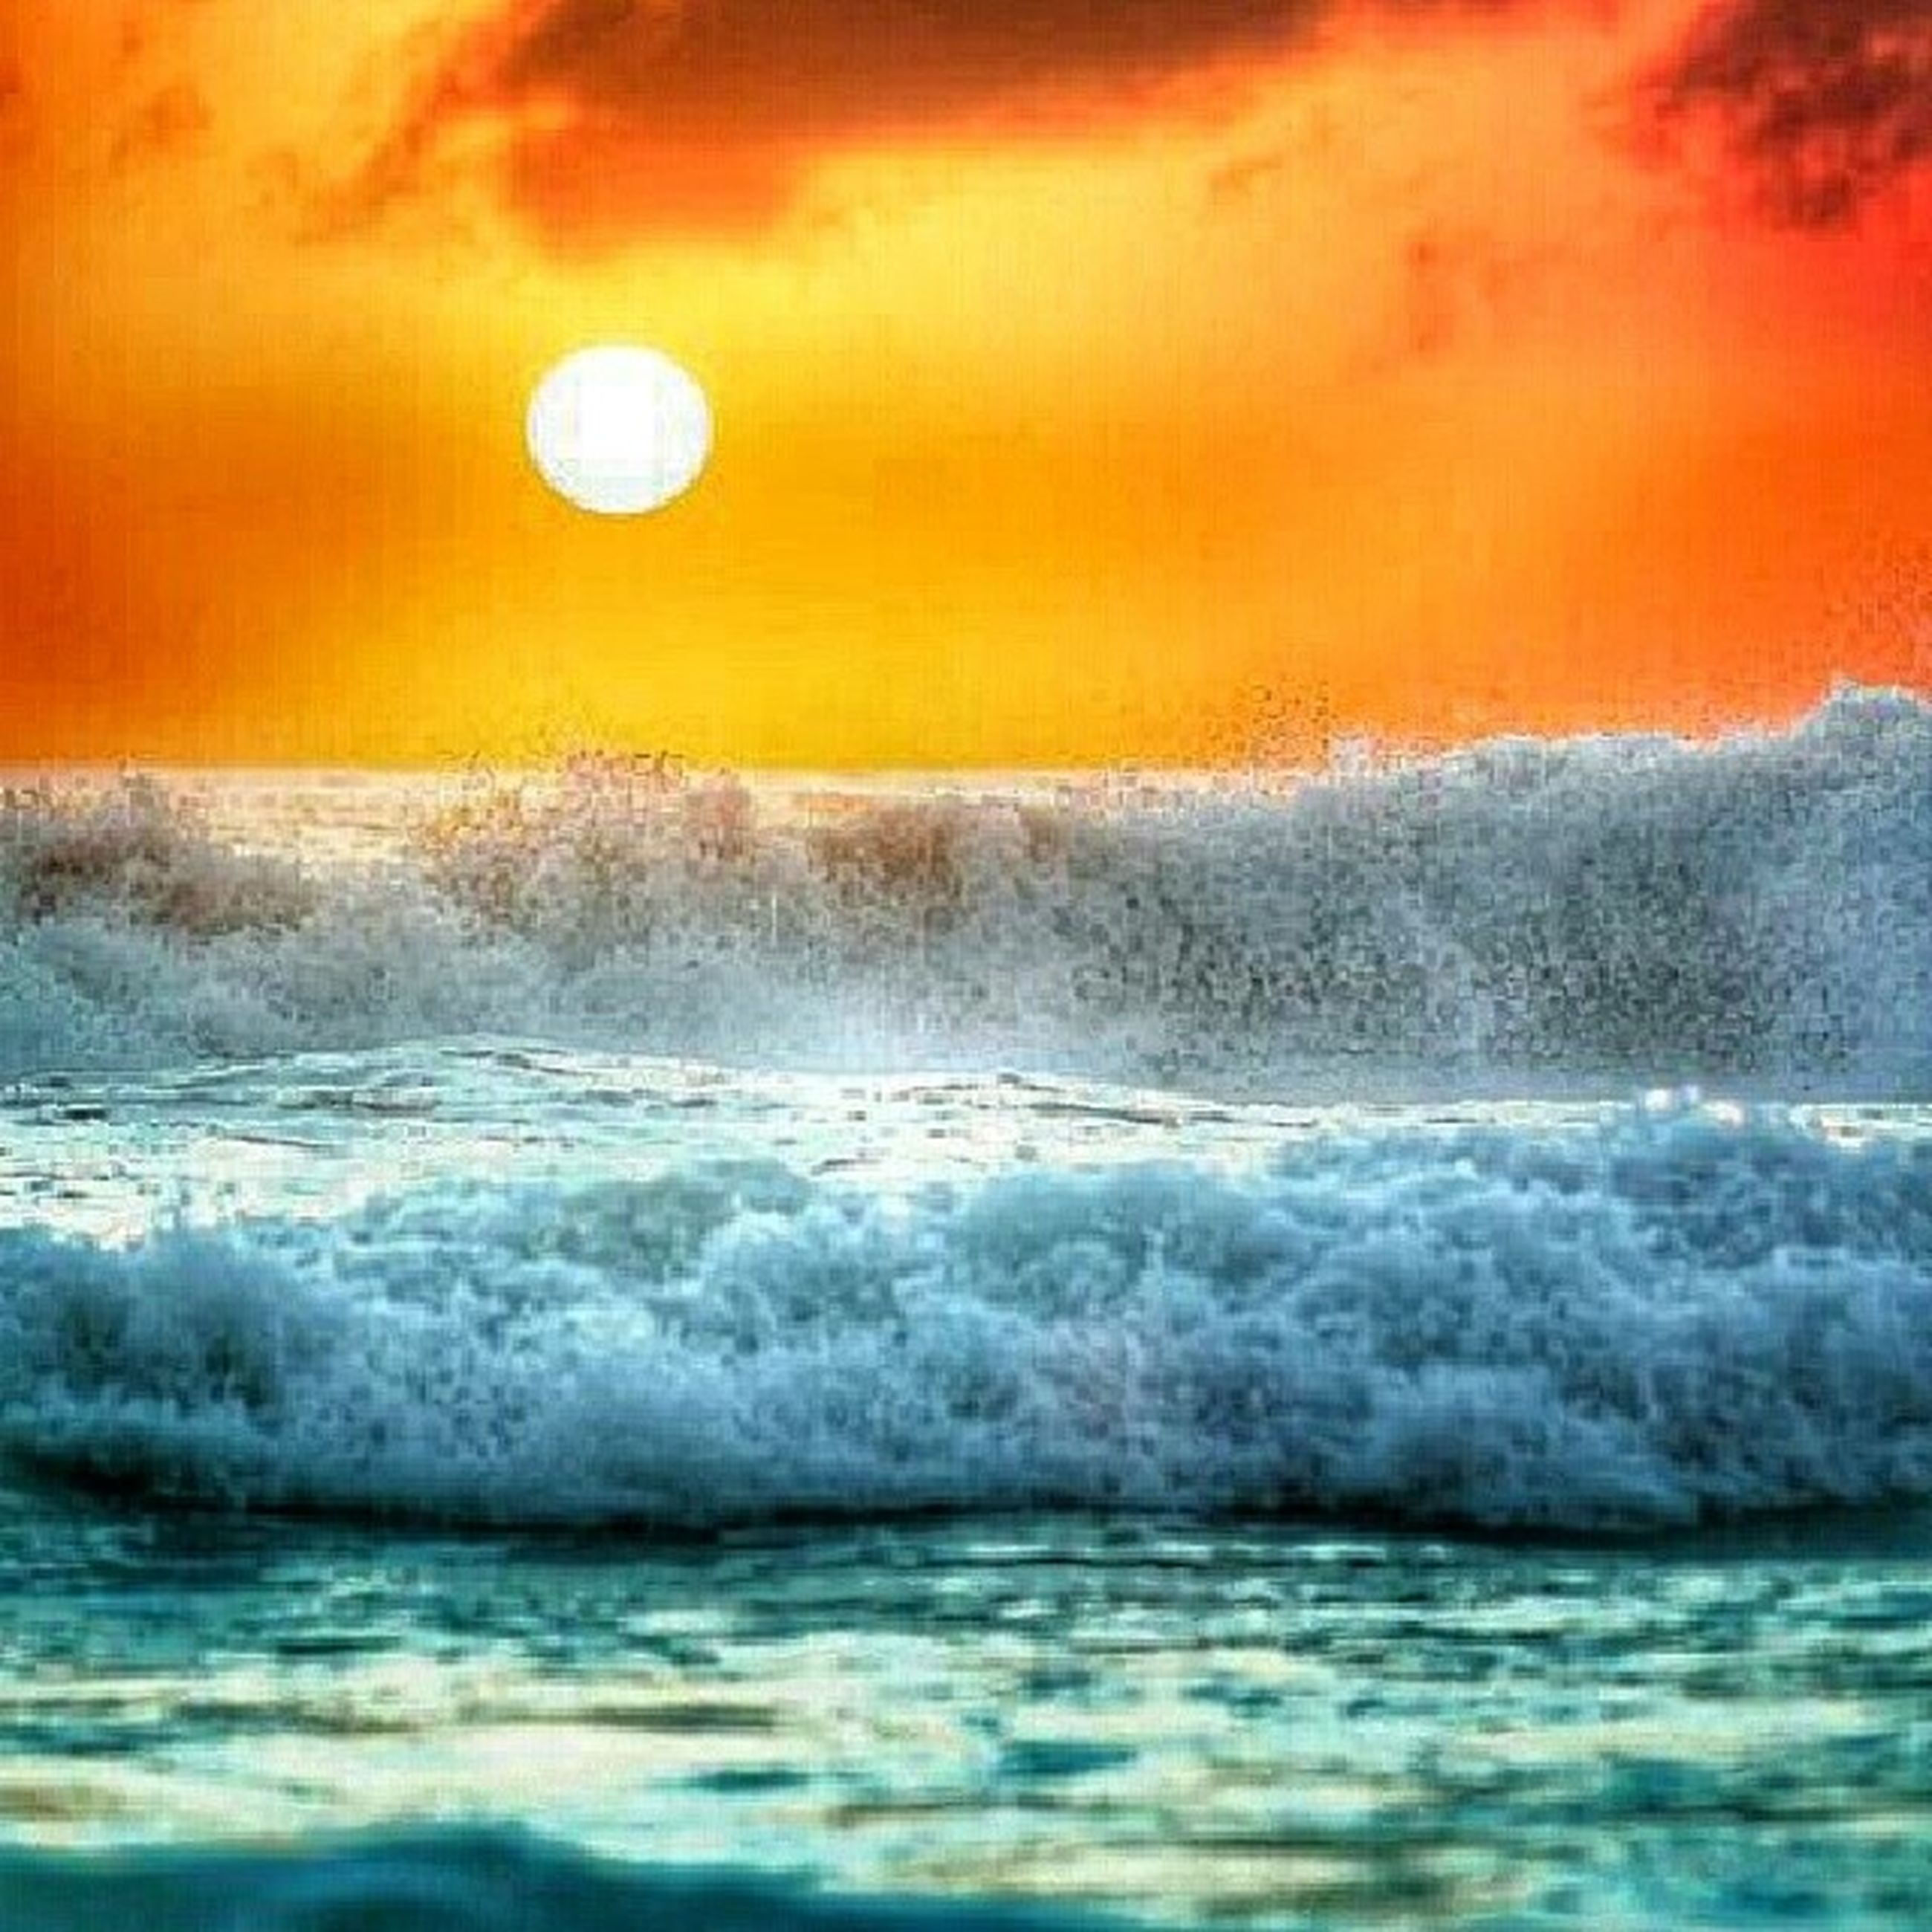 sea, water, sunset, waterfront, horizon over water, wave, scenics, beauty in nature, tranquil scene, nature, orange color, sky, rippled, tranquility, surf, idyllic, seascape, beach, motion, splashing